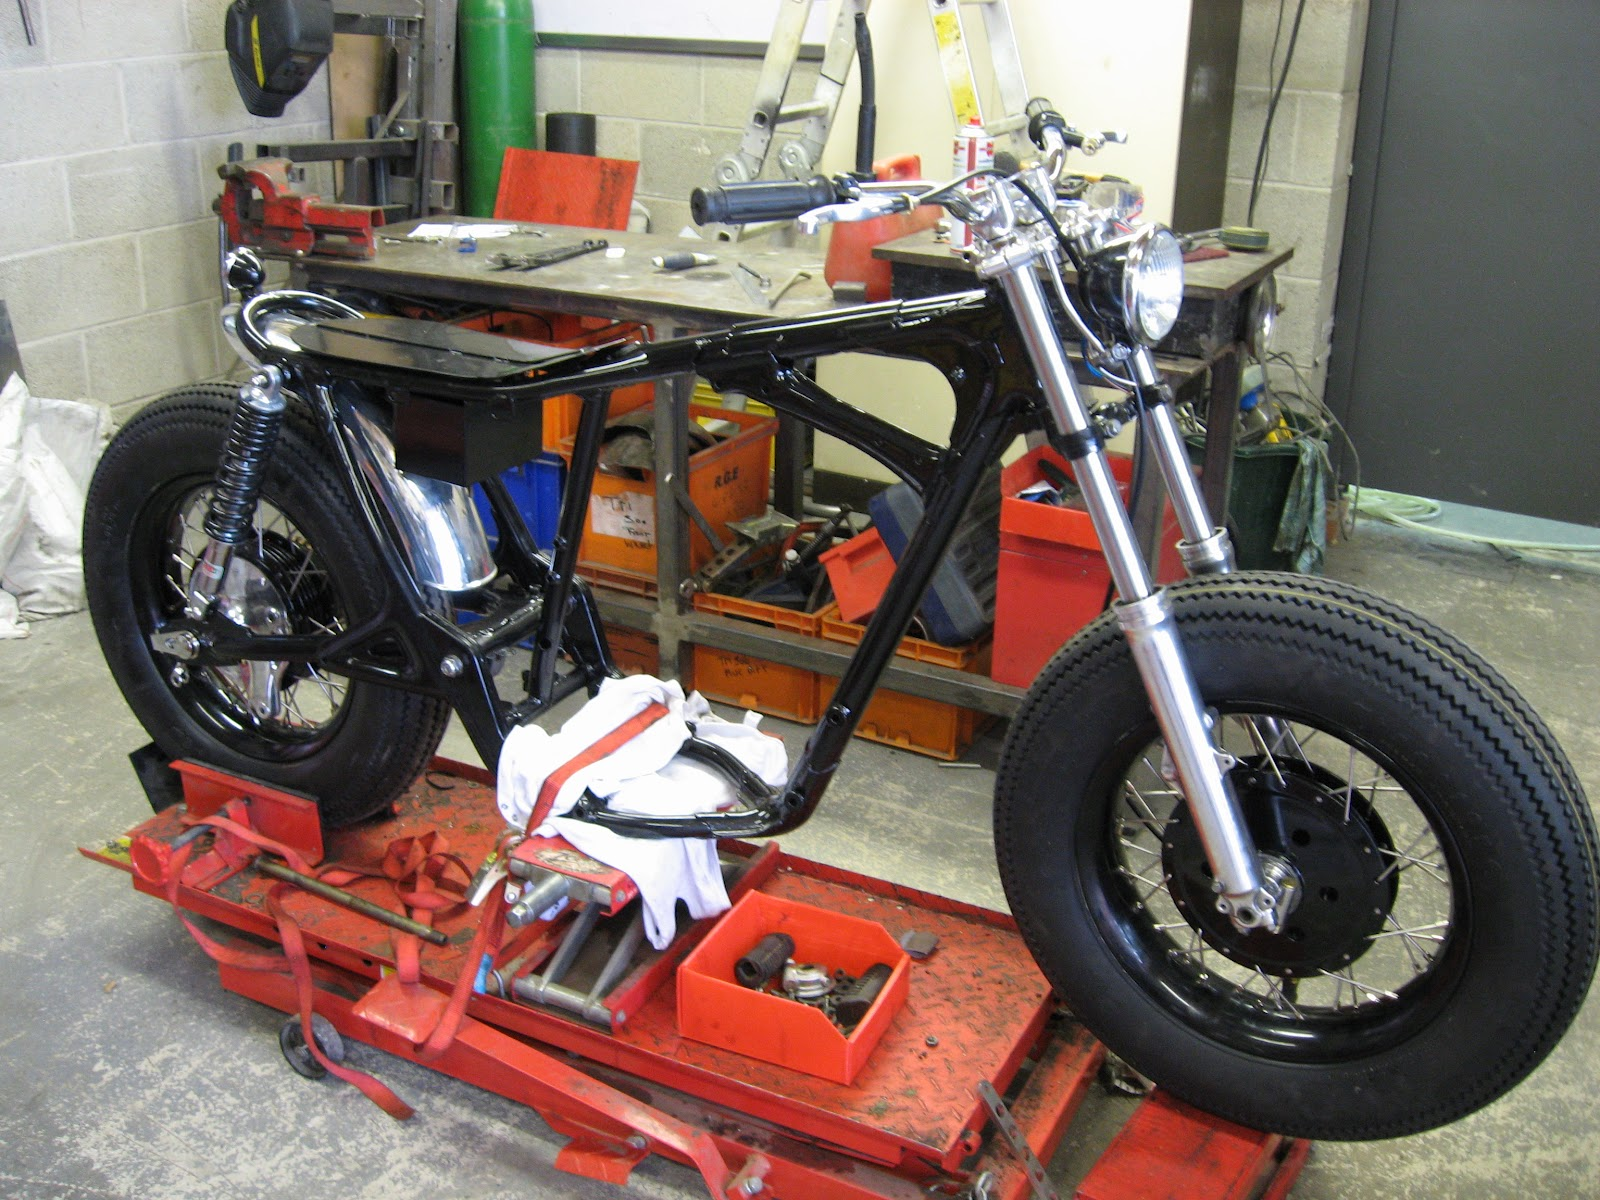 The Honda Cb450 Brat On Its Way Now